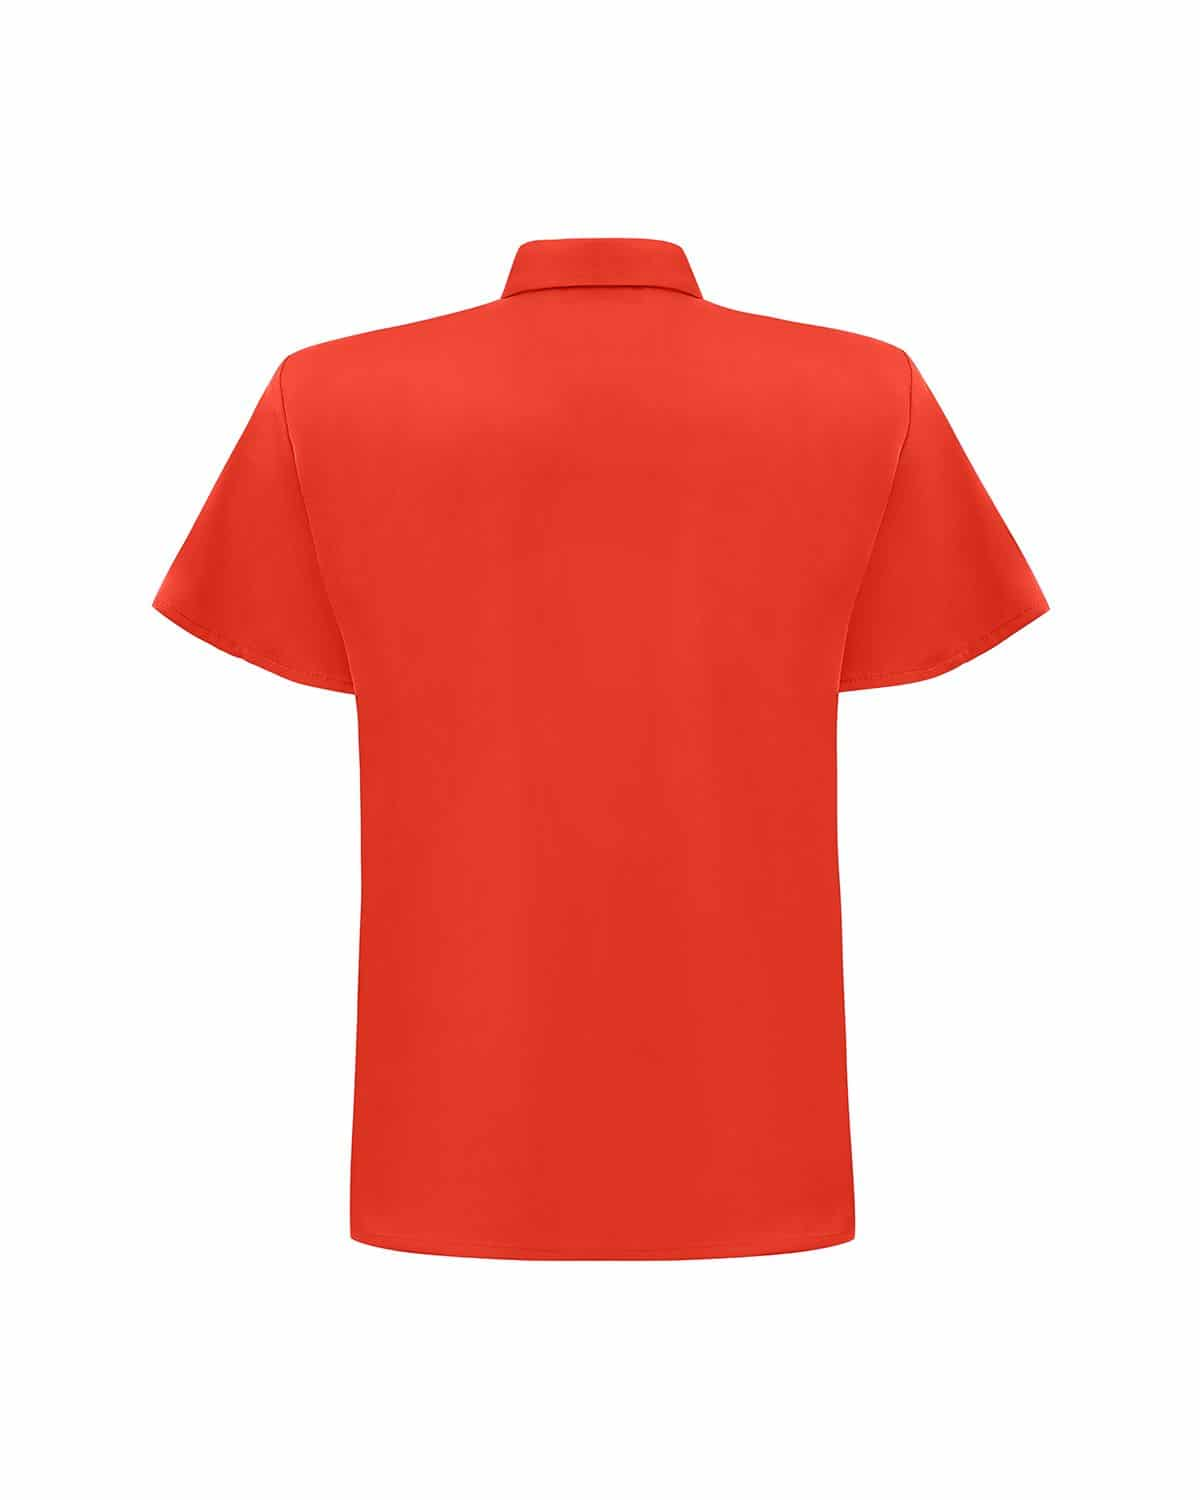 Chemise Courtes Manches Corail Fluo